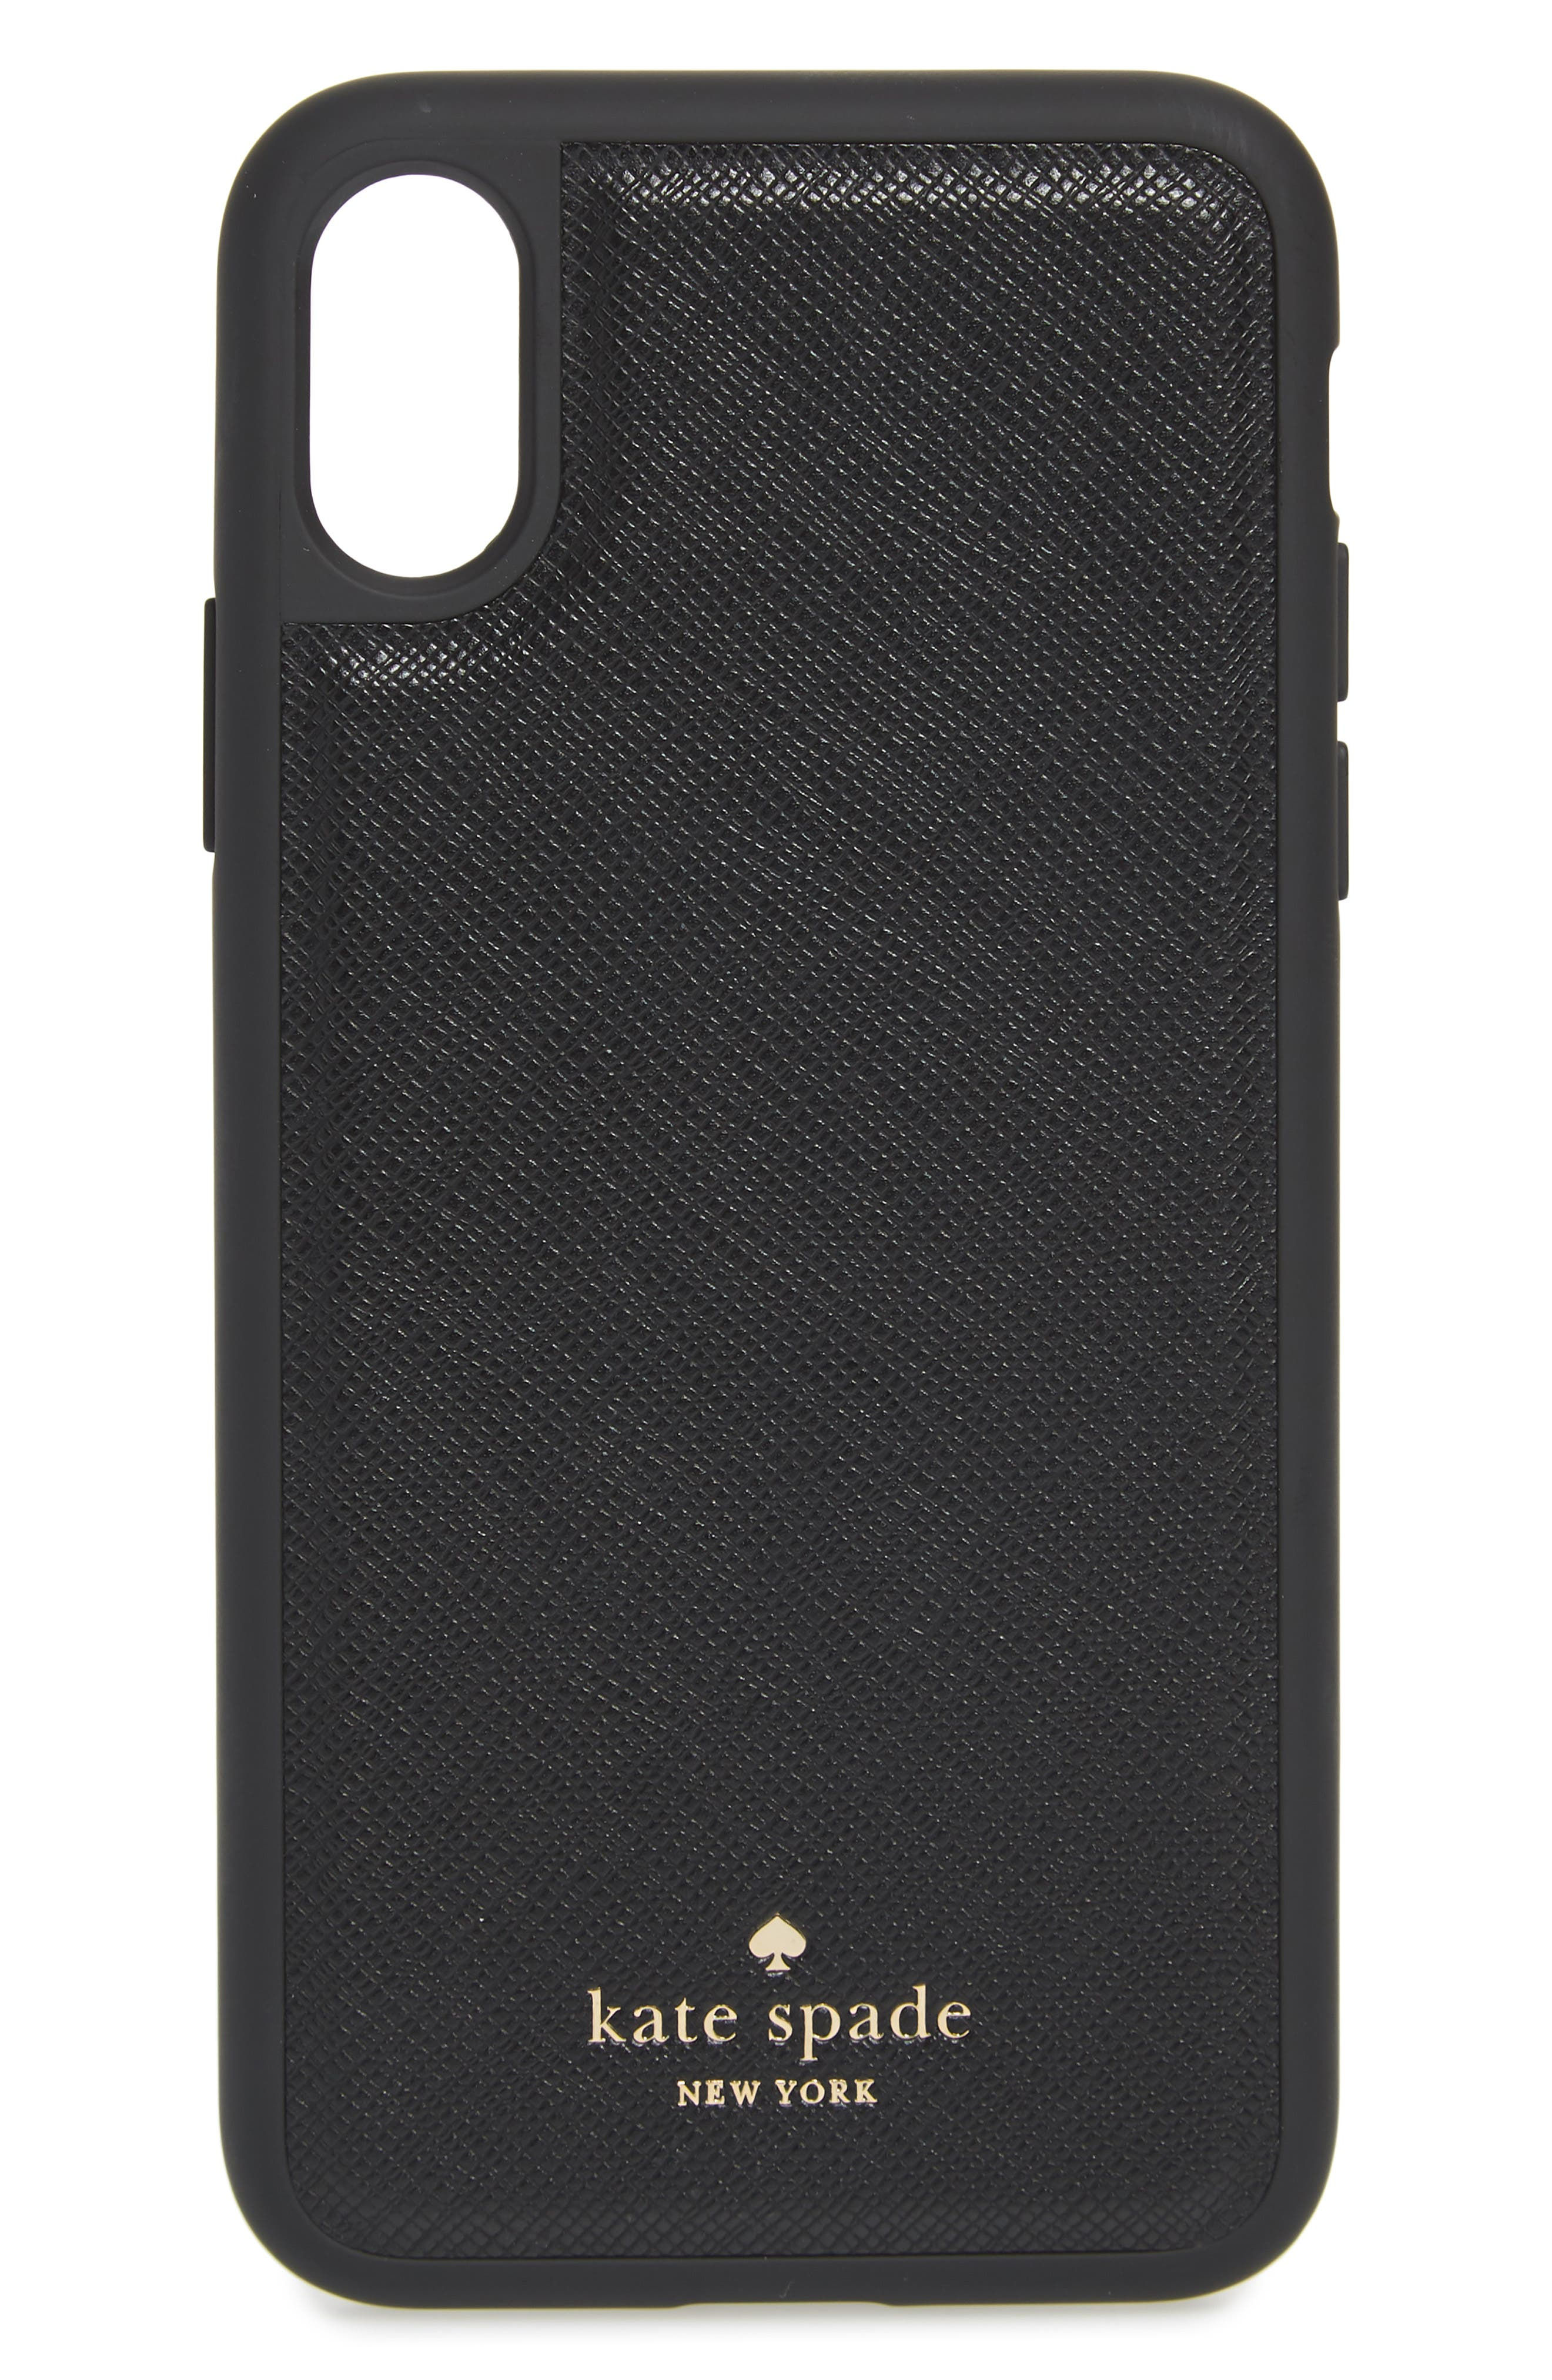 KATE SPADE NEW YORK, iPhone X/Xs/Xs Max & XR magnetic wrap folio case, Alternate thumbnail 4, color, BLACK/ TUSK